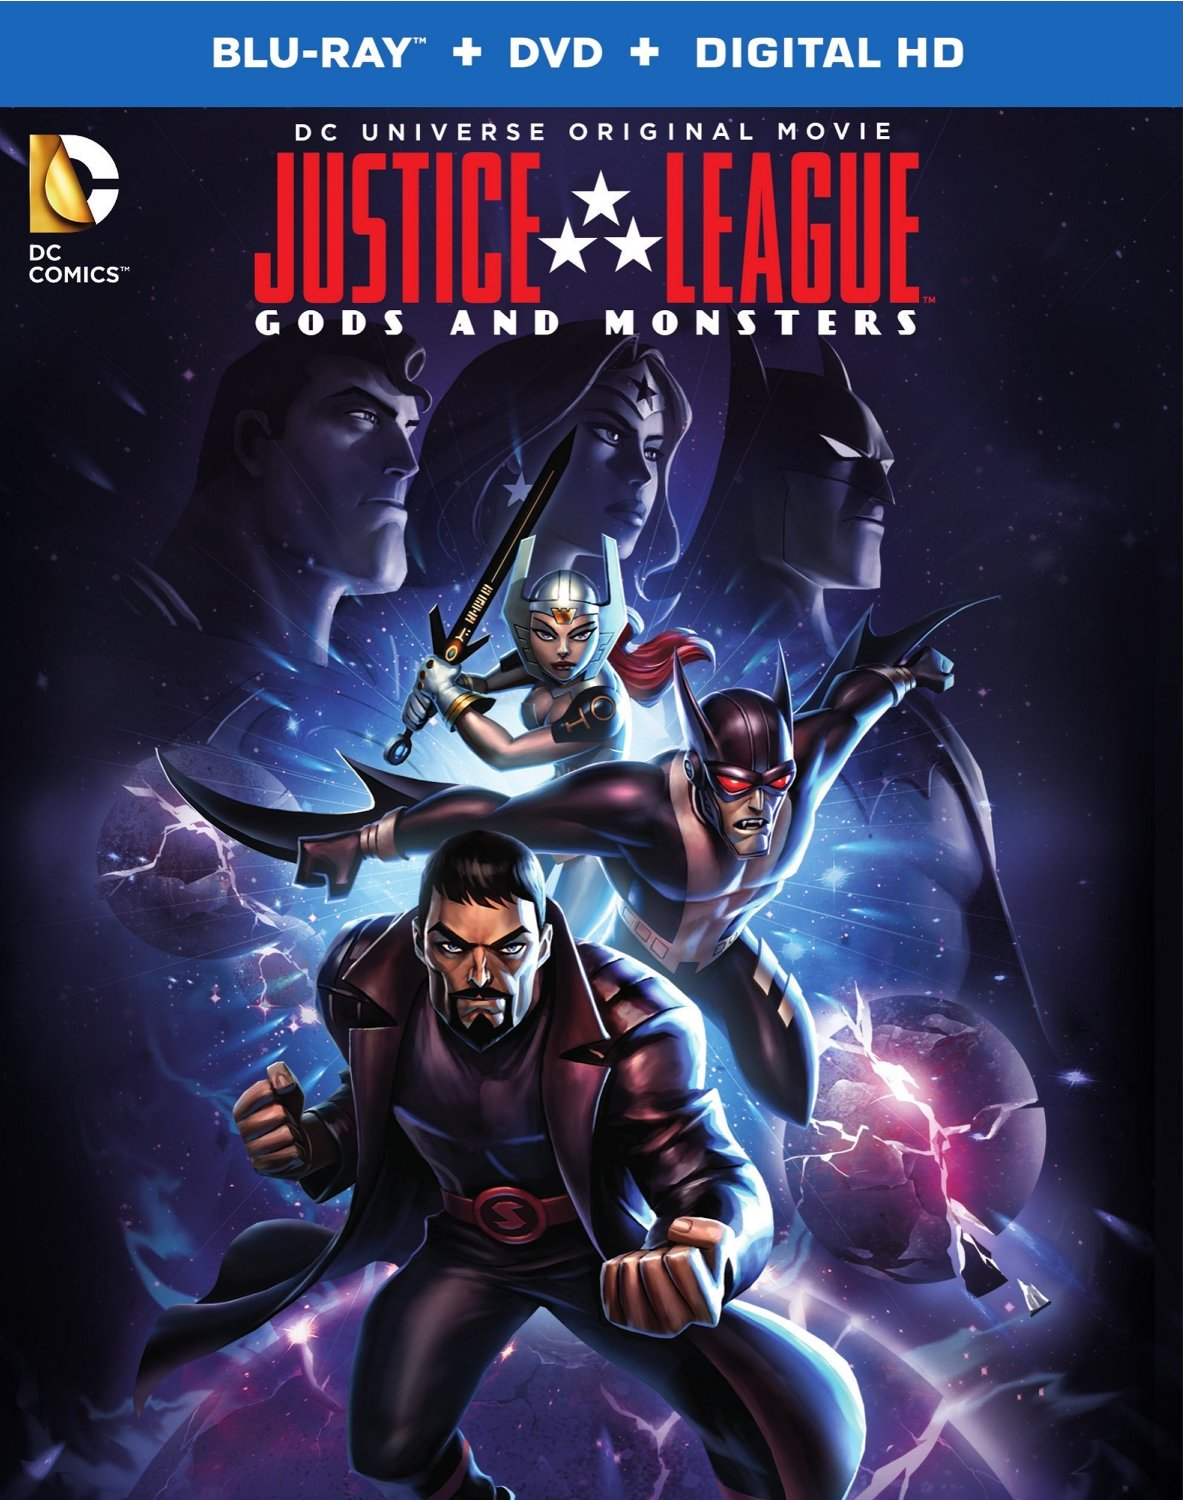 Justice League: Gods and Monsters Chronicles (2015) short